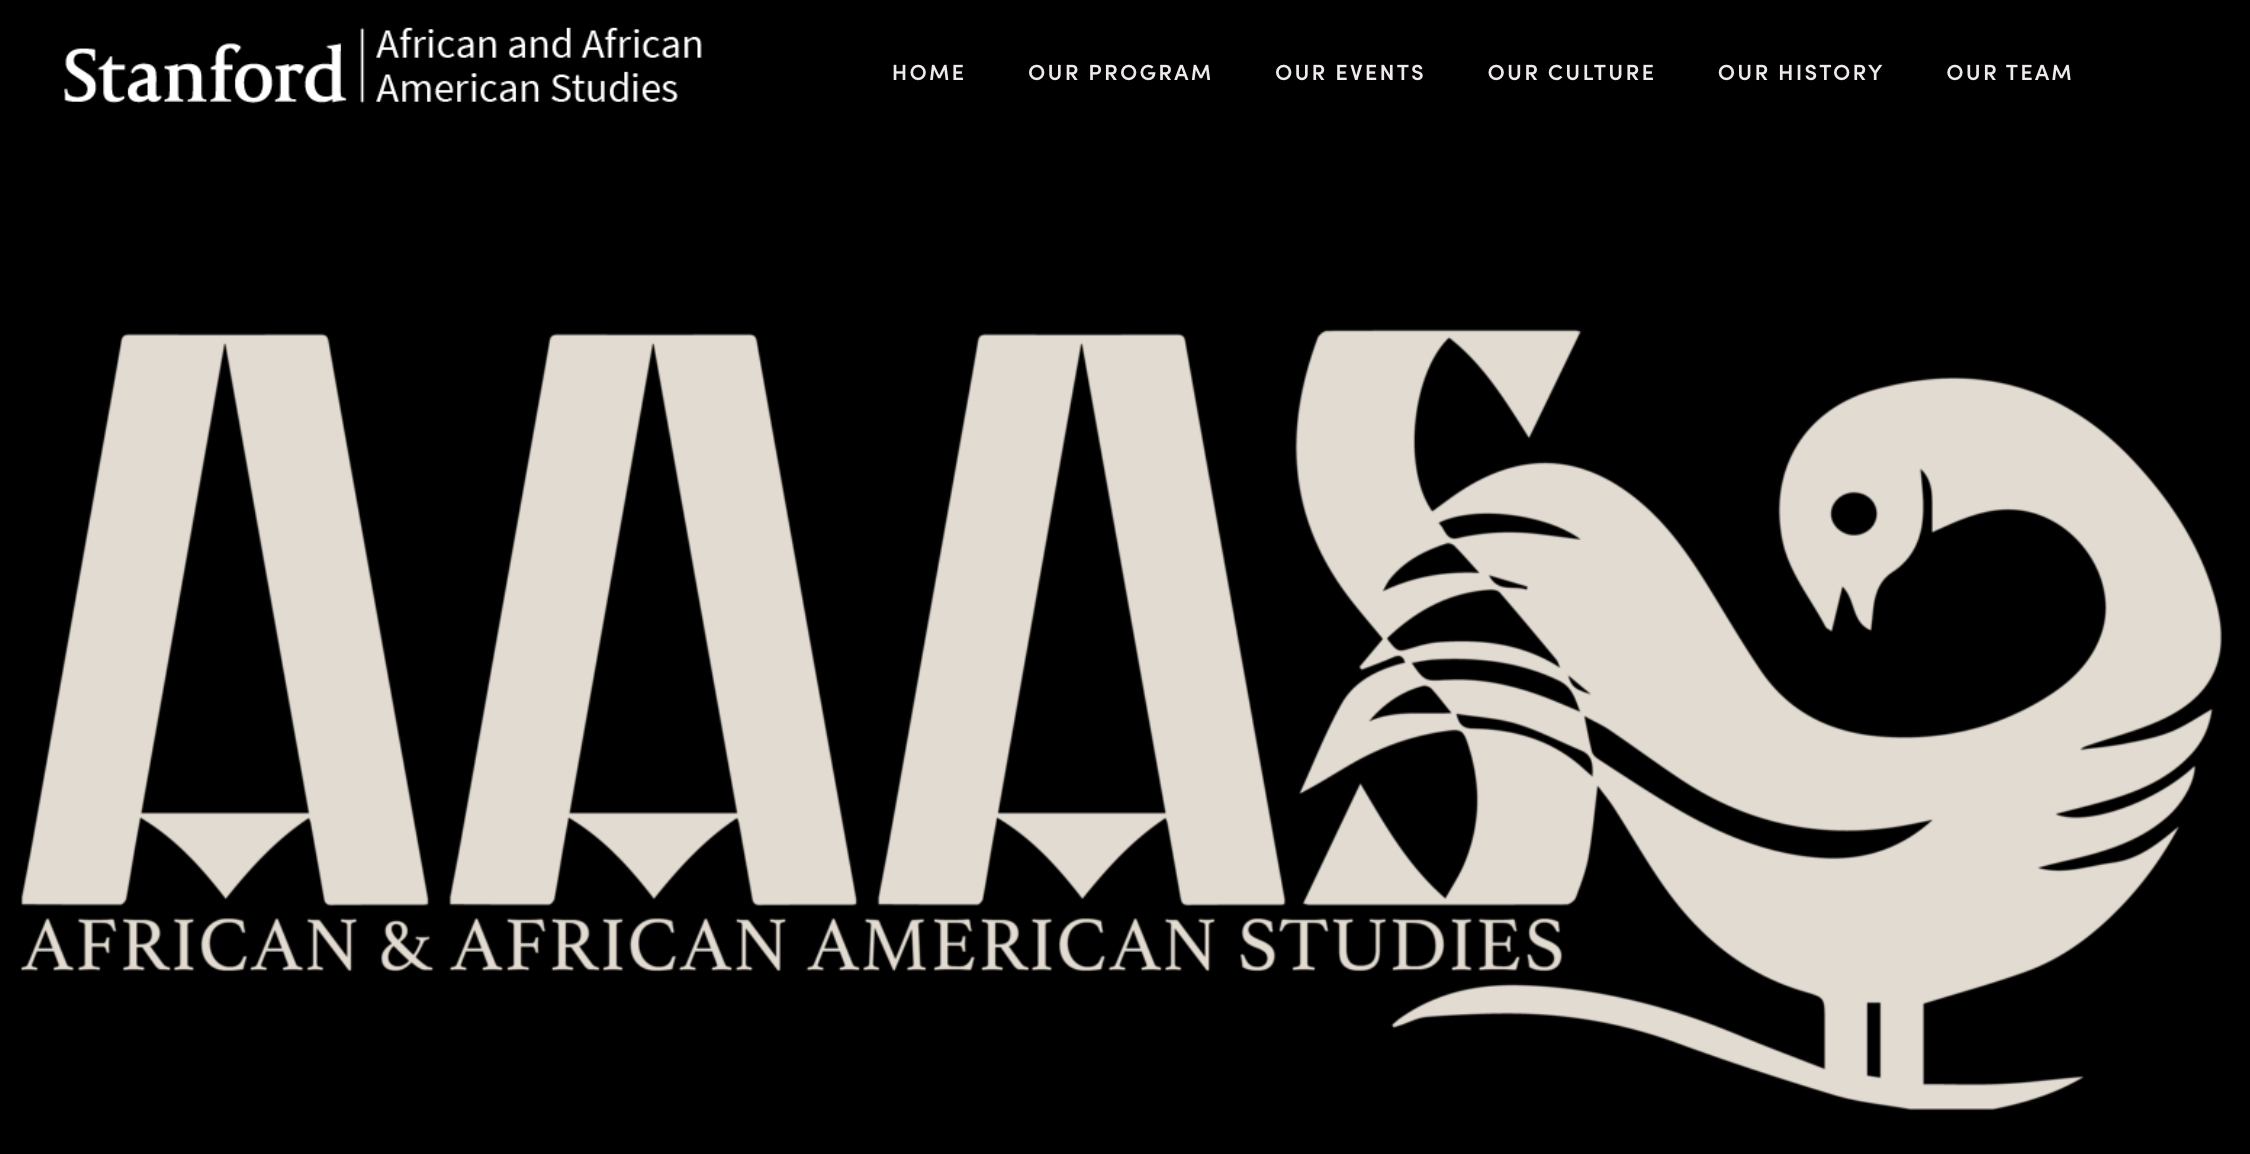 Sankofa symbol, represented by the Sankofa bird facing forward, while looking backwards. Source: Stanford University (2019). African & African American Studies Program homepage [web image]. Retrieved from https://aaas.stanford.edu/.